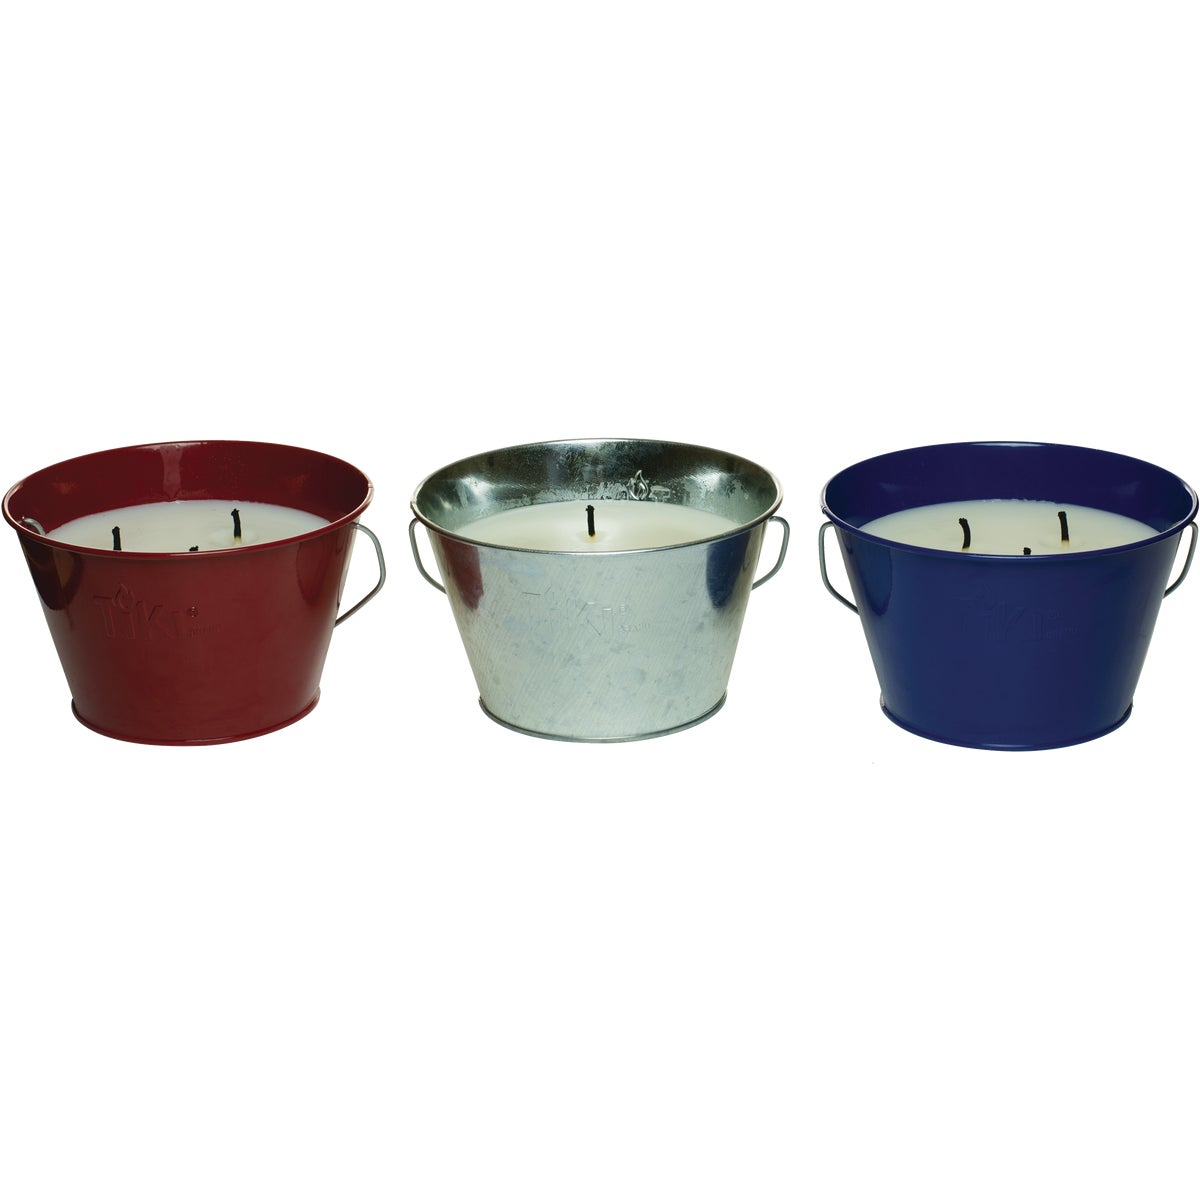 3 WICK CITRONELLA BUCKET